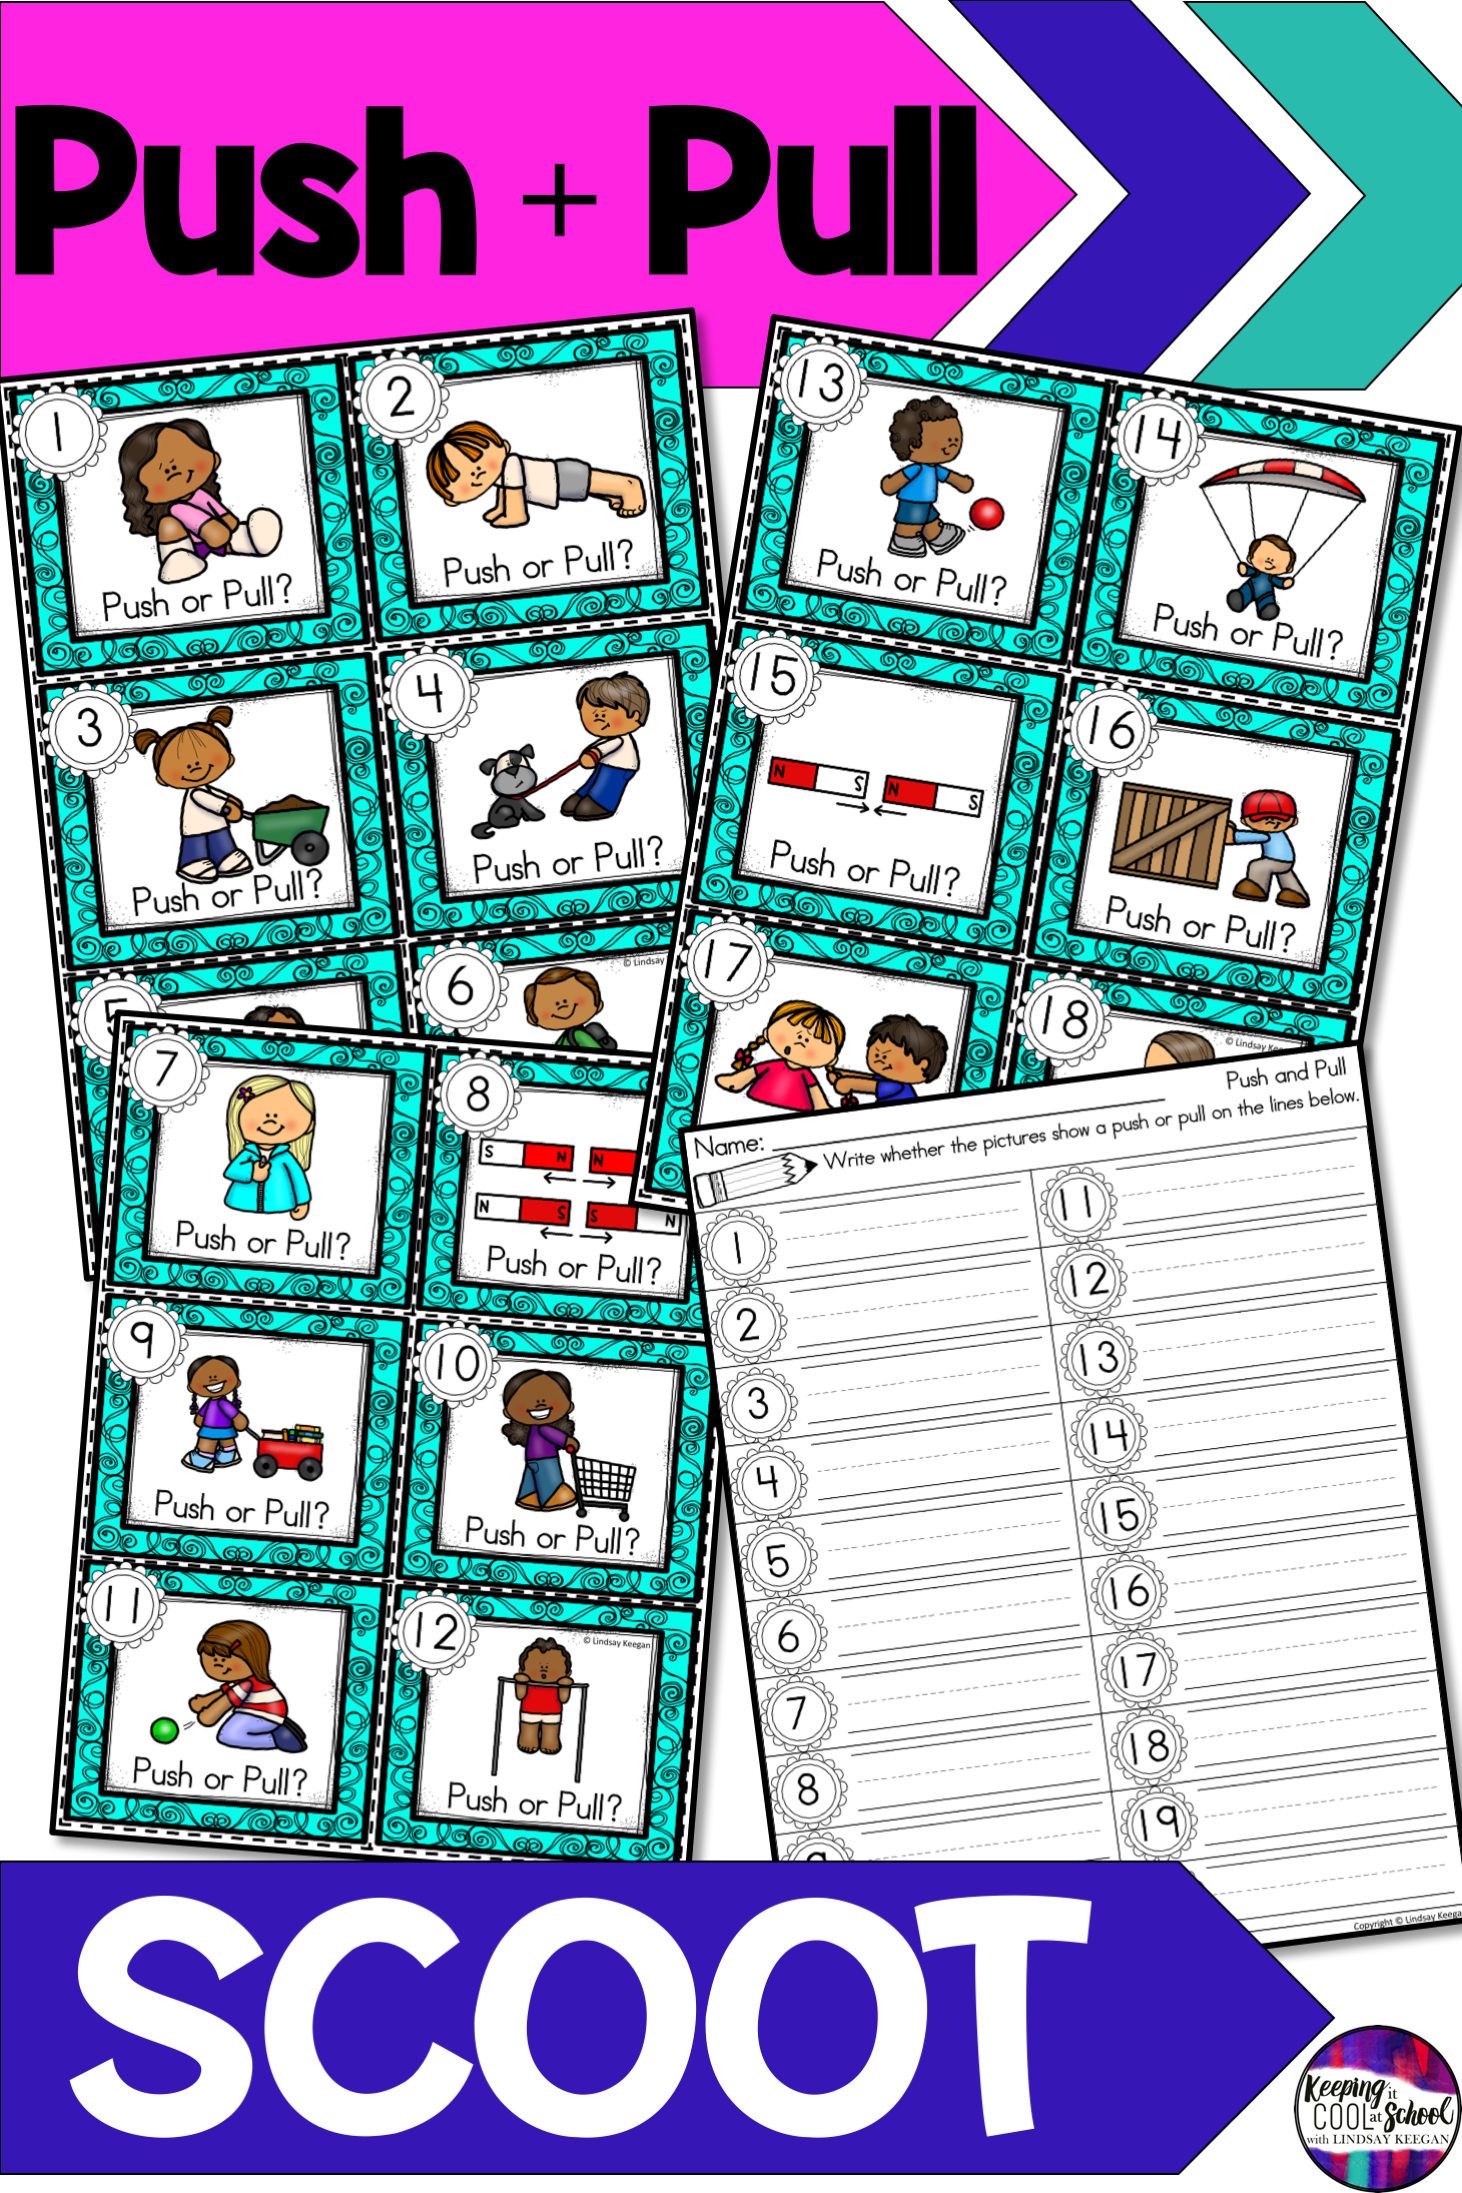 Push And Pull Scoot Game Science Activities For Kids Kindergarten Classroom Games Pushes And Pulls [ 2193 x 1462 Pixel ]